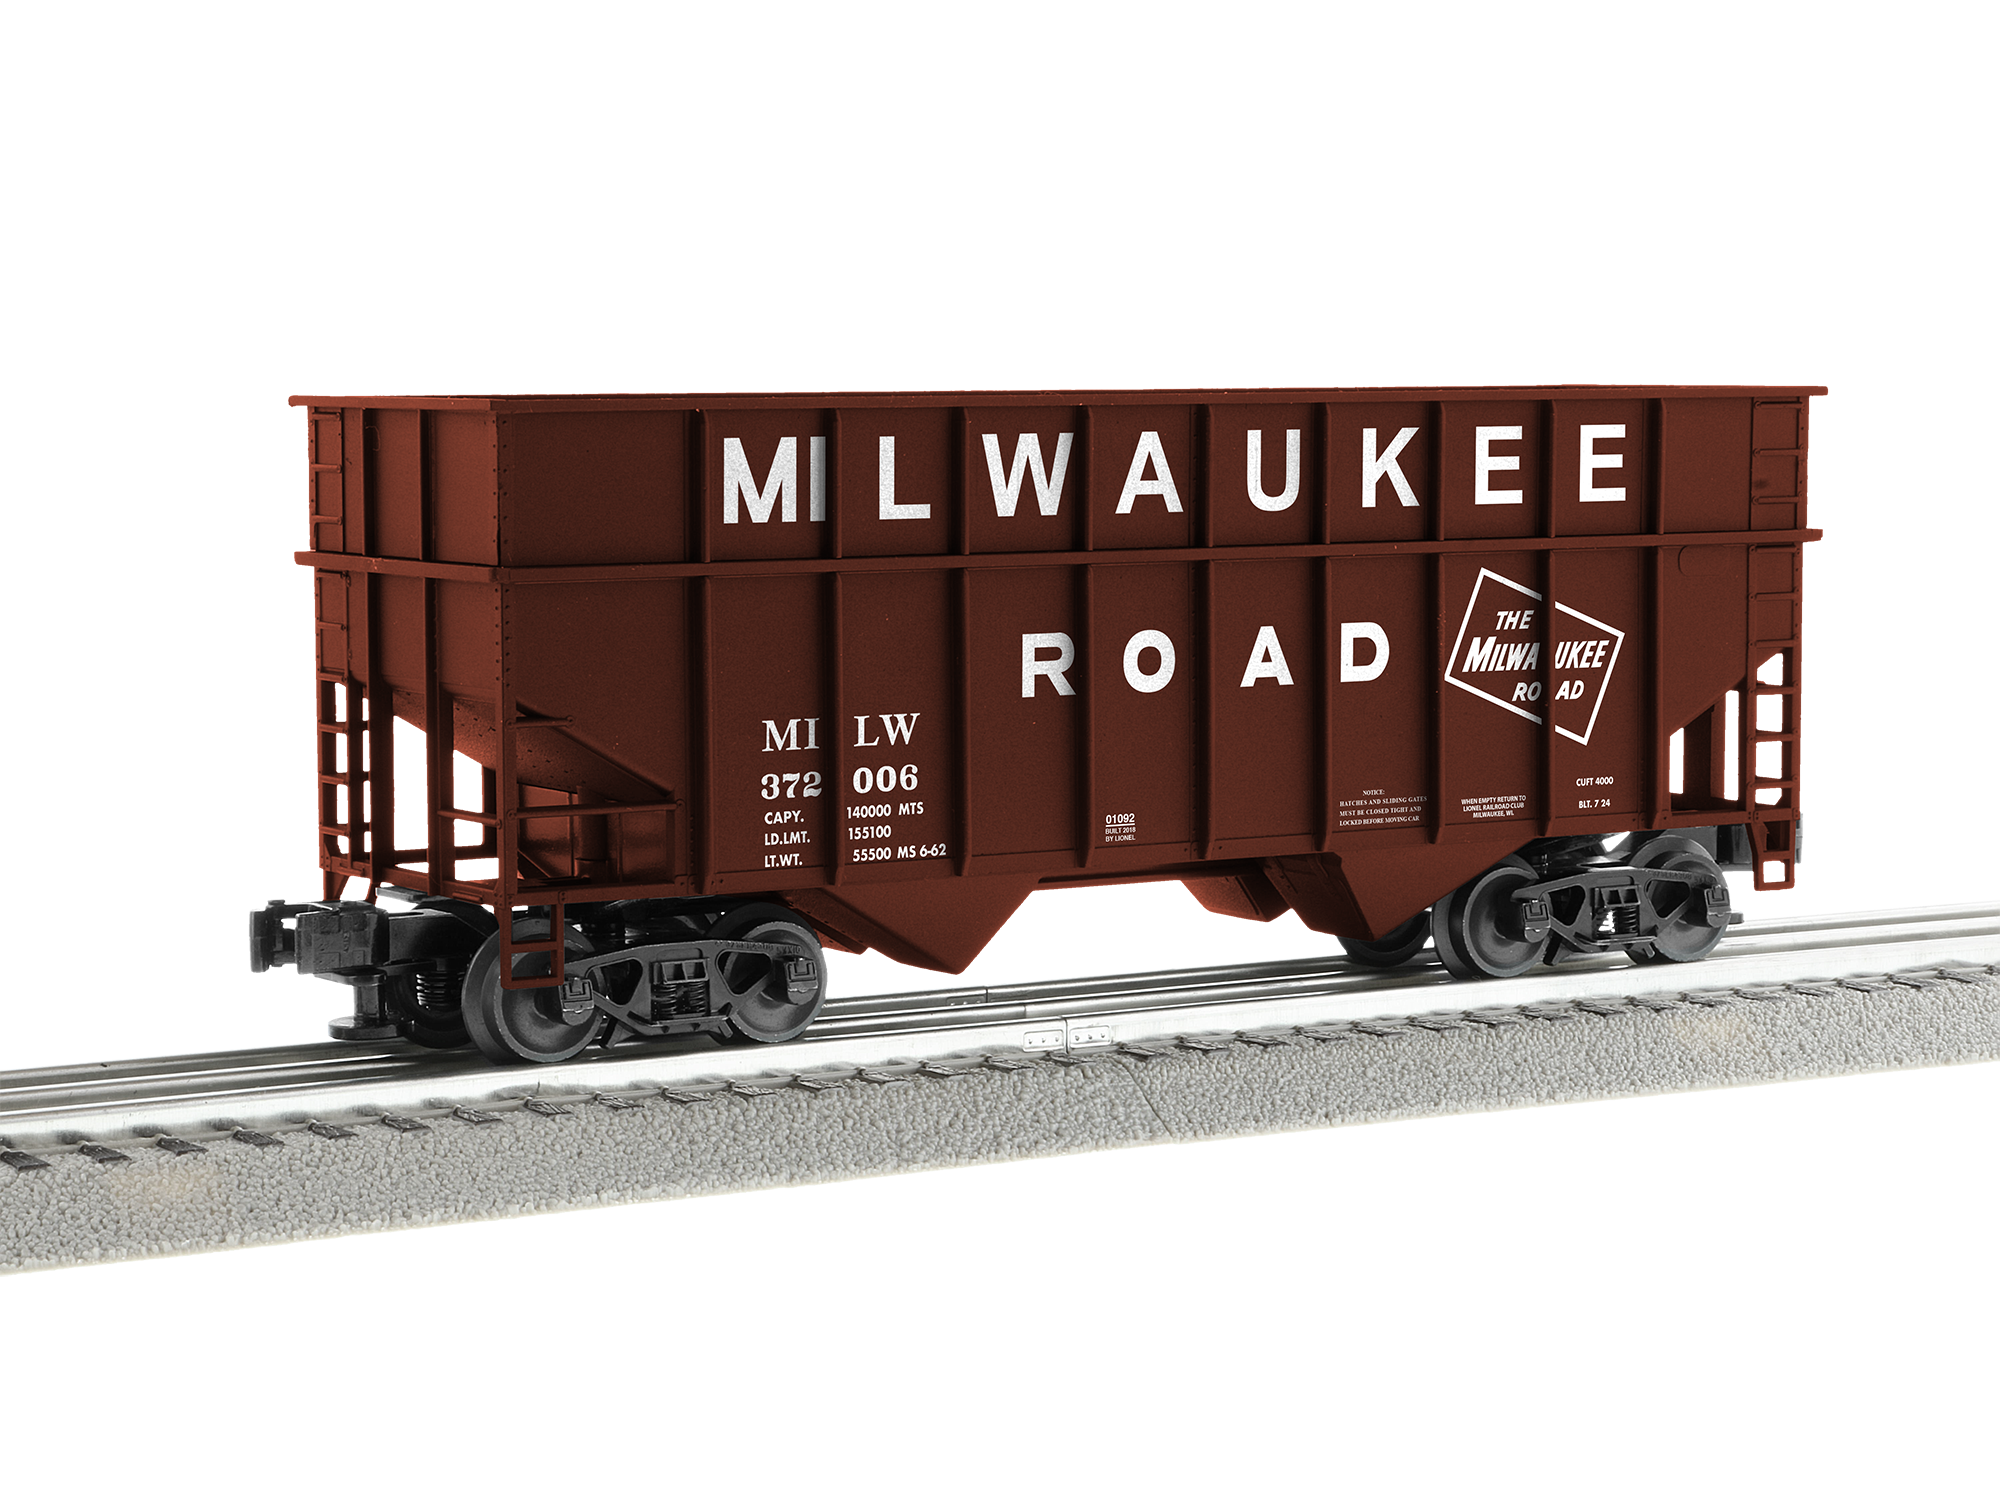 1901092 LRRC Milwaukee WdChp Hpr_#372006 (2).png